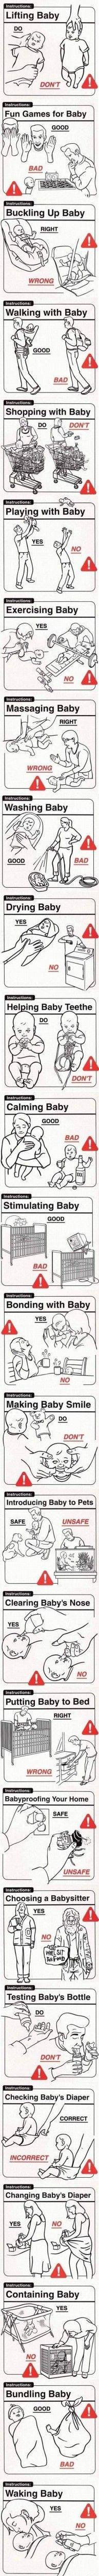 parenting do's and don'ts!!: Of, Babies, Giggle, New Parents, Don T, So Funny